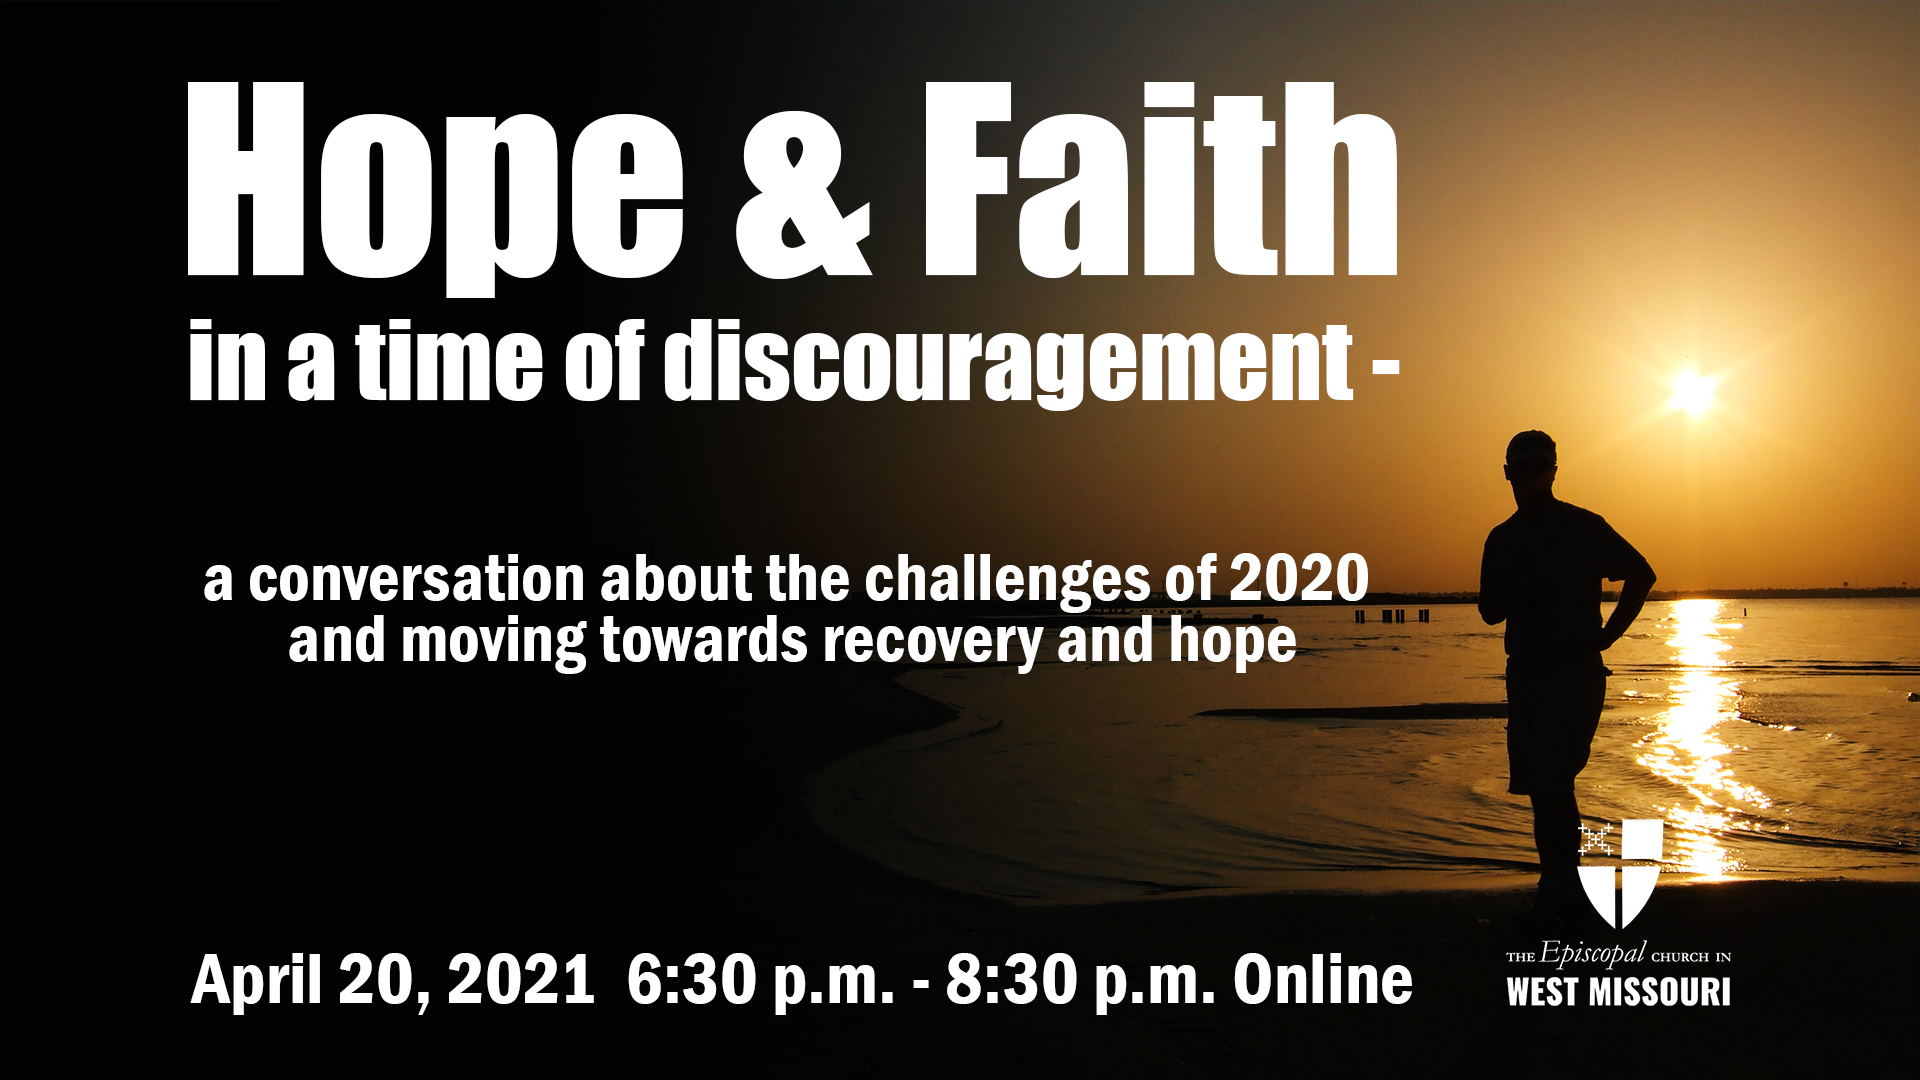 Hope & Faith in a time of discouragement – a conversation about the challenges of 2020 and moving towards recovery and hope